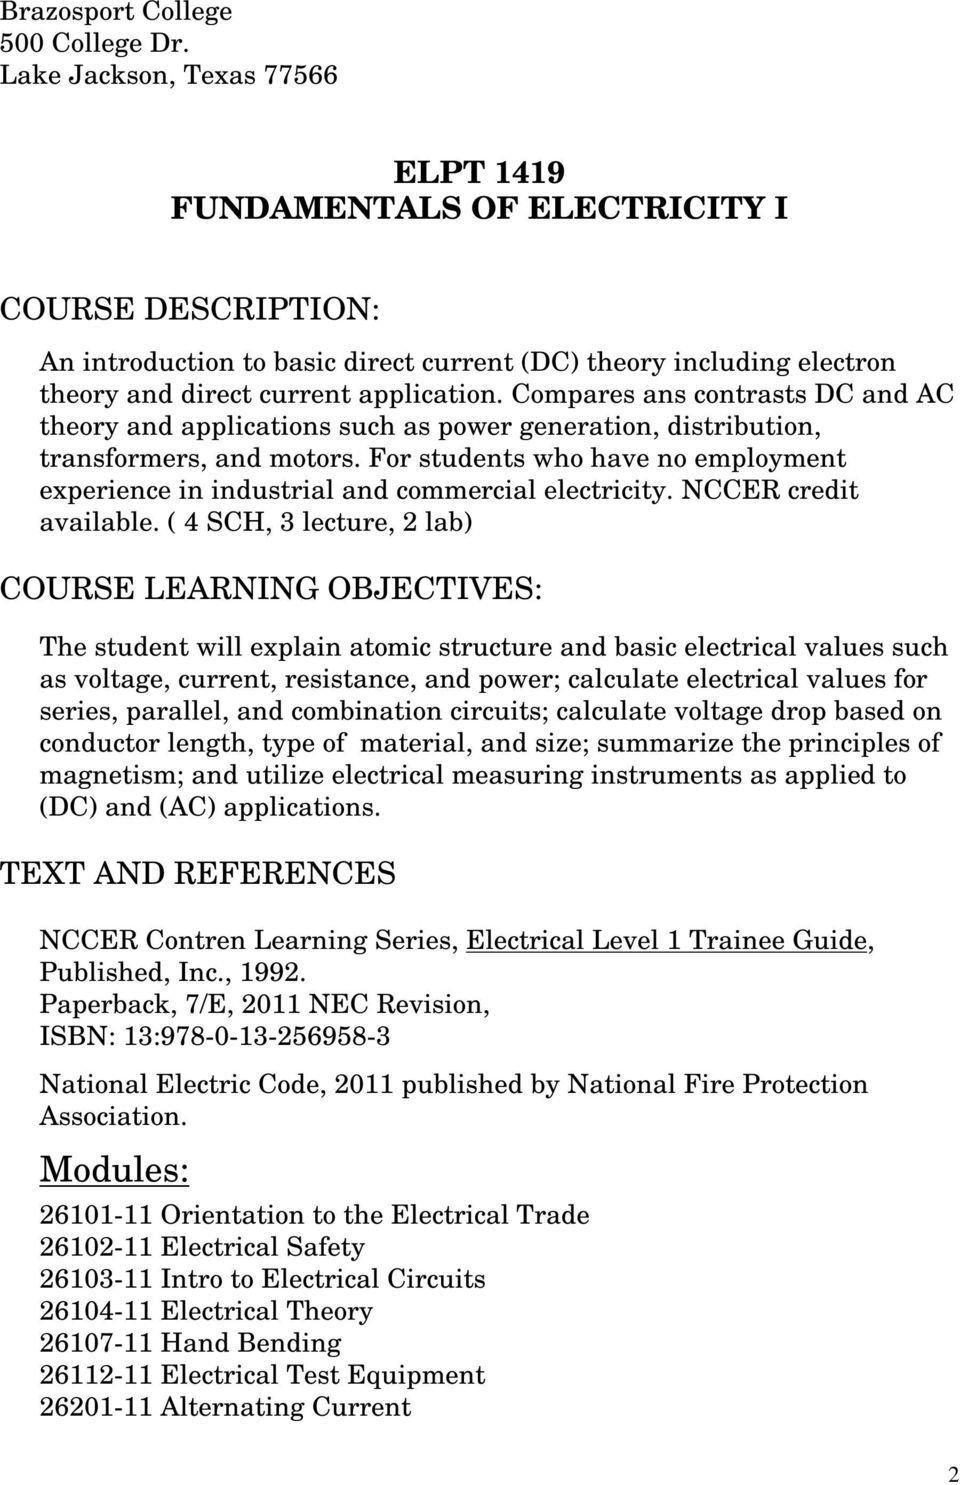 Elpt 1419 Fundamentals Of Electricity I Pdf Ac Dc Theory Circuits Compares Ans Contrasts And Applications Such As Power Generation Distribution